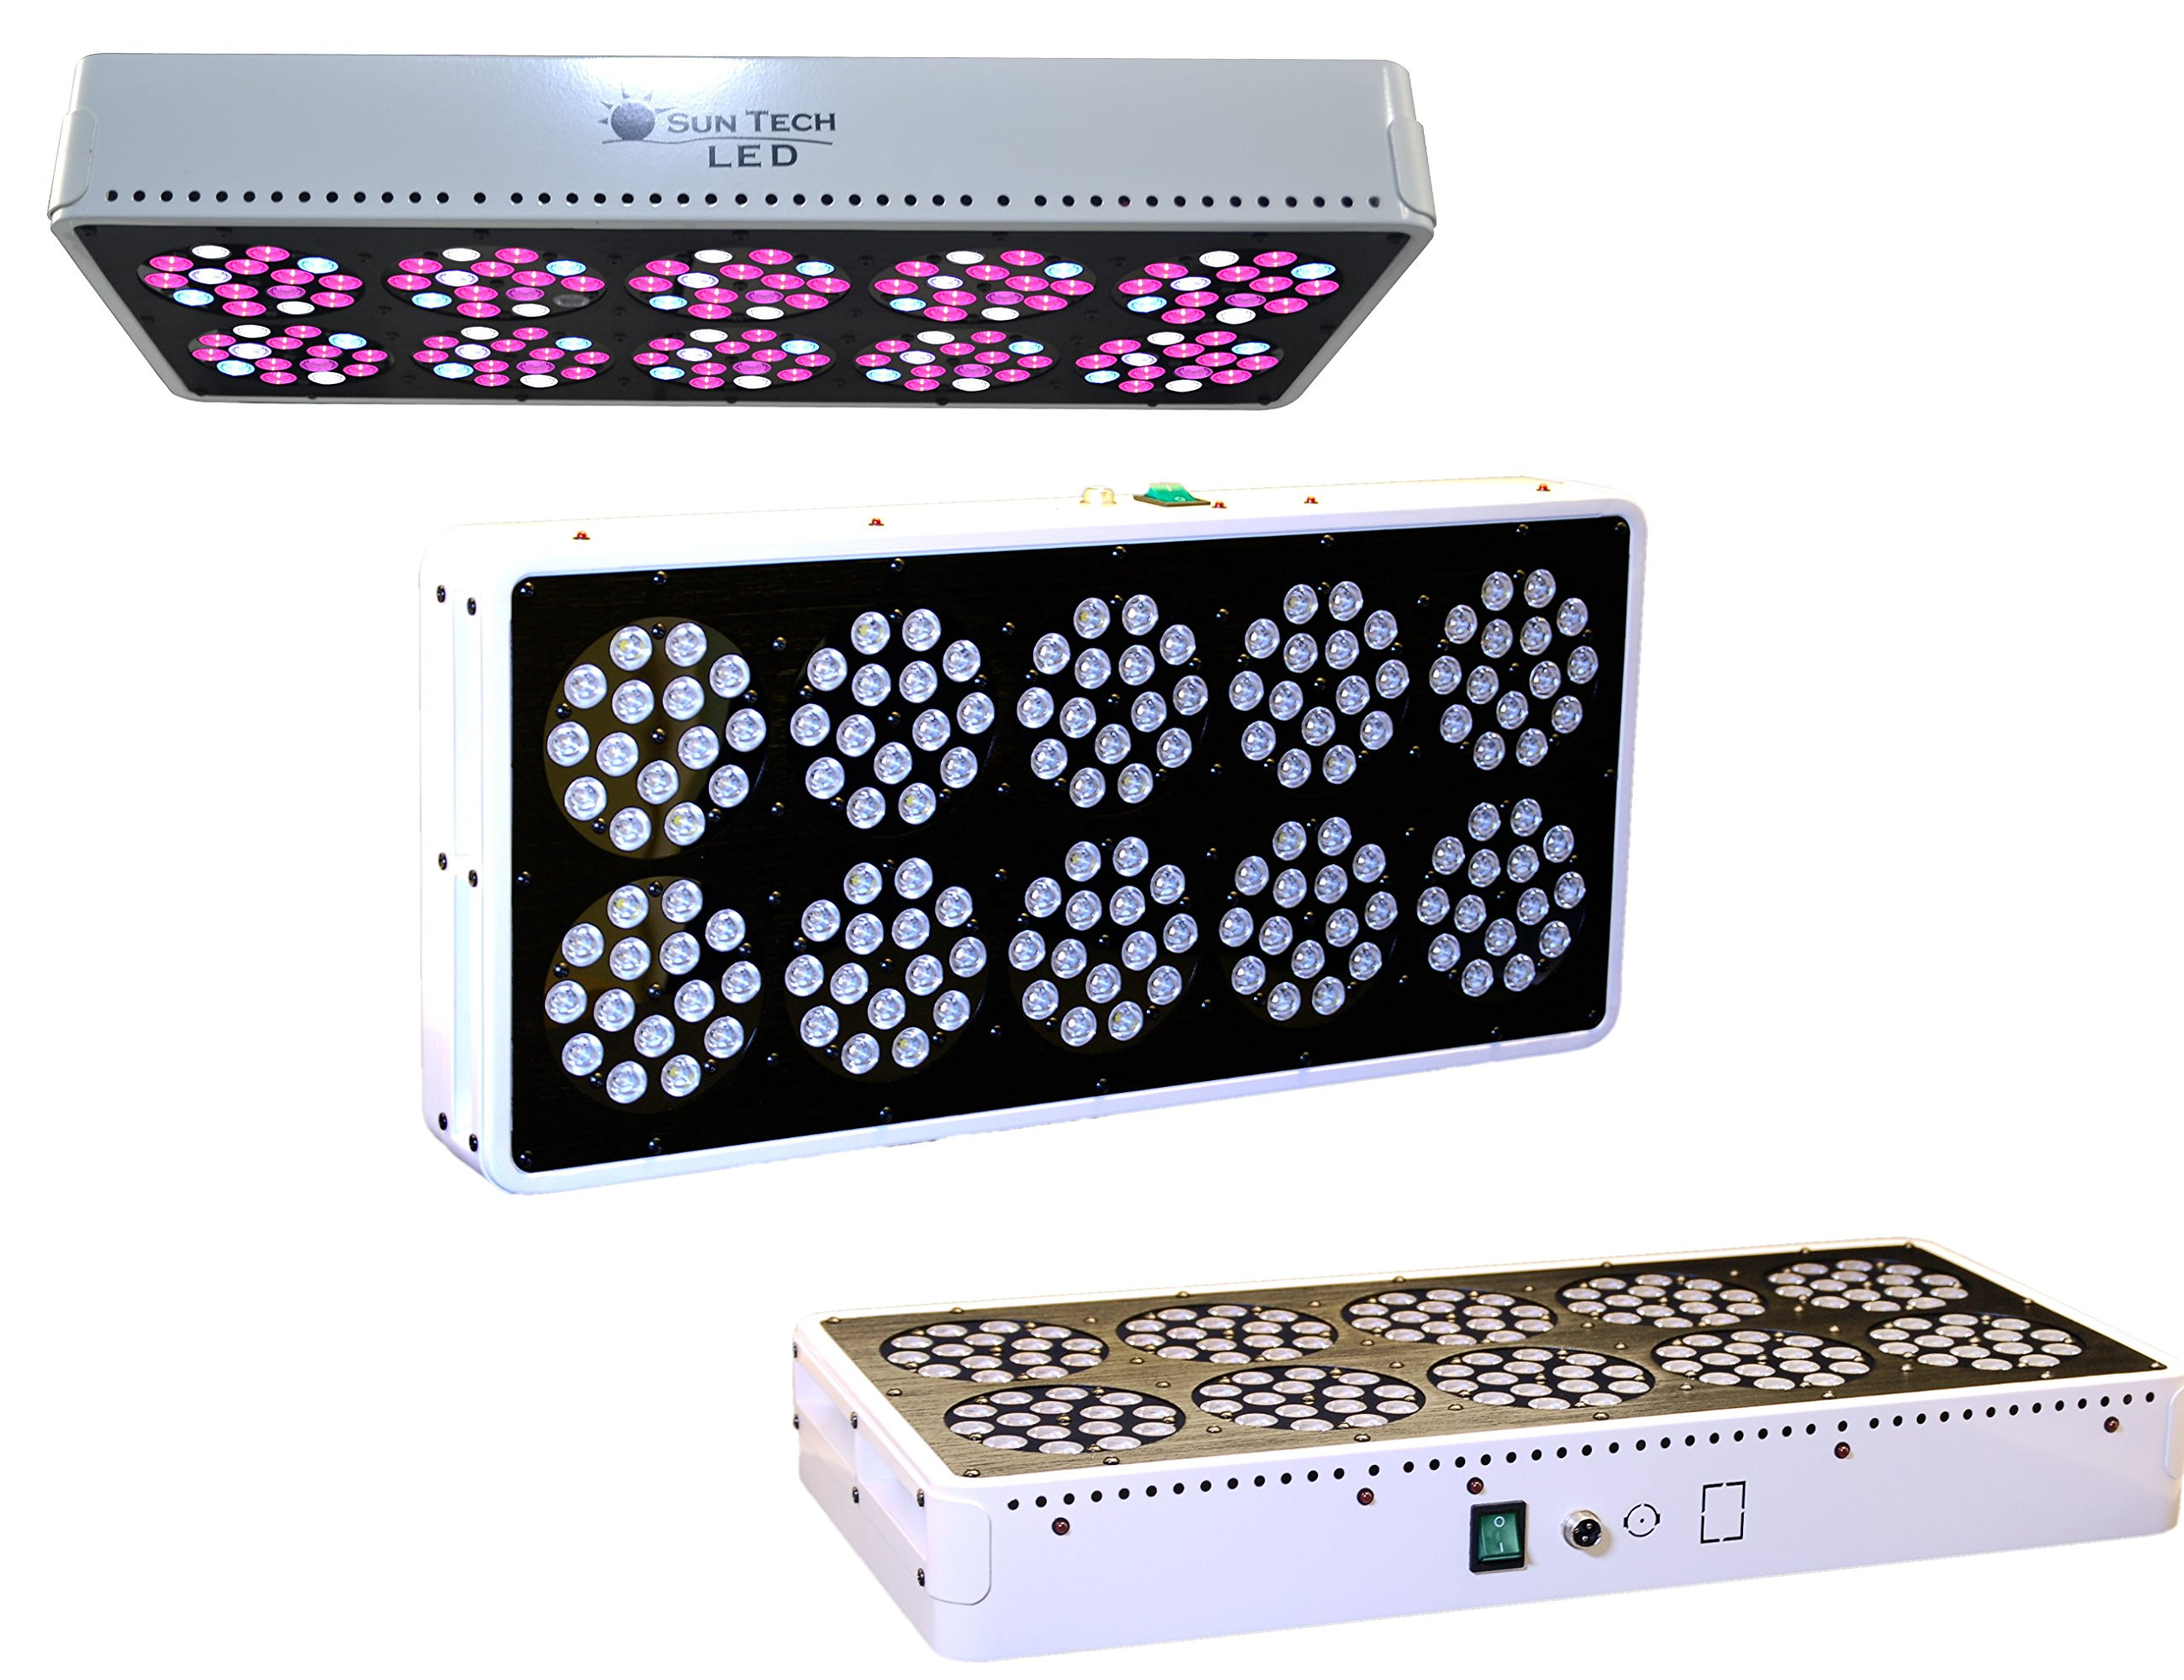 SUNTech LED 360W LED Grow Light with Optimal Spectrum with Infrared (IR) and Ultraviolet (UV)